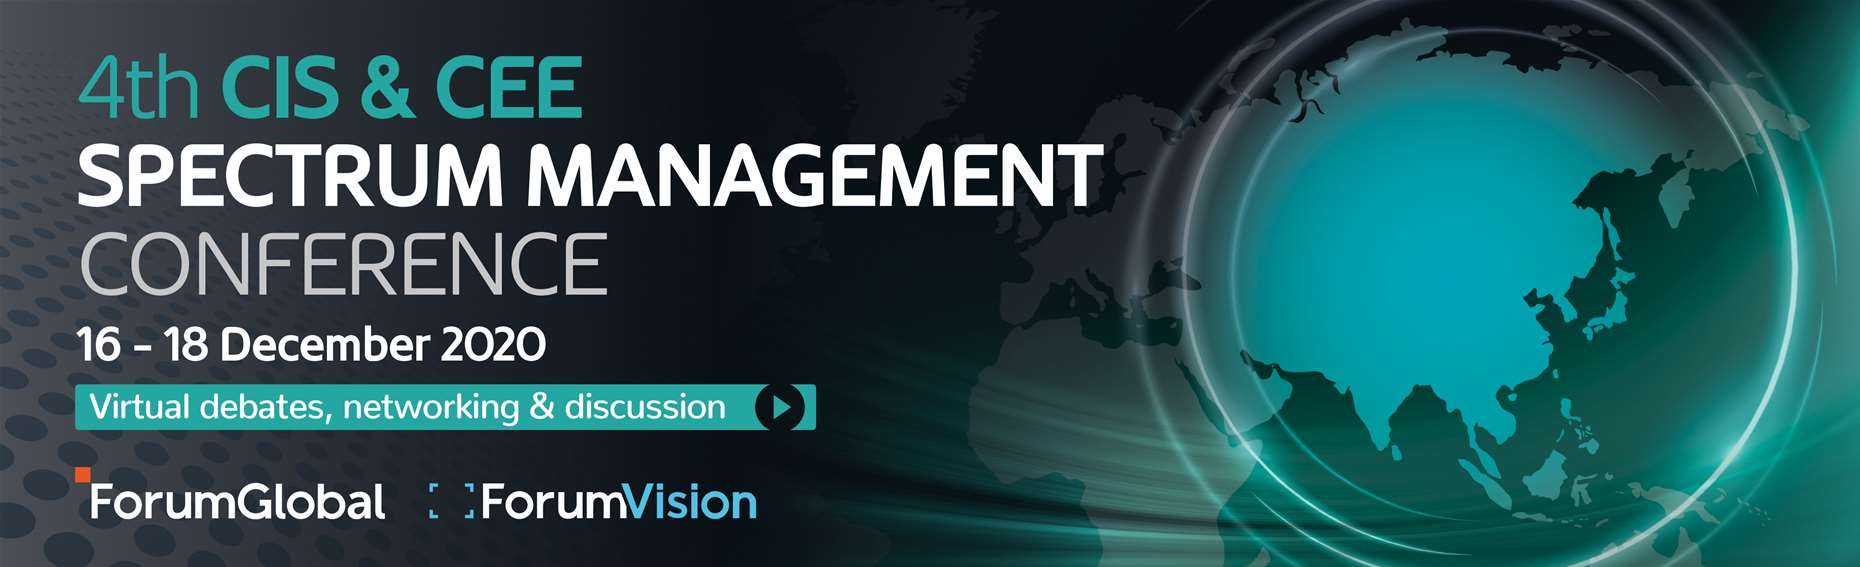 The CIS & CEE Spectrum Management Conference